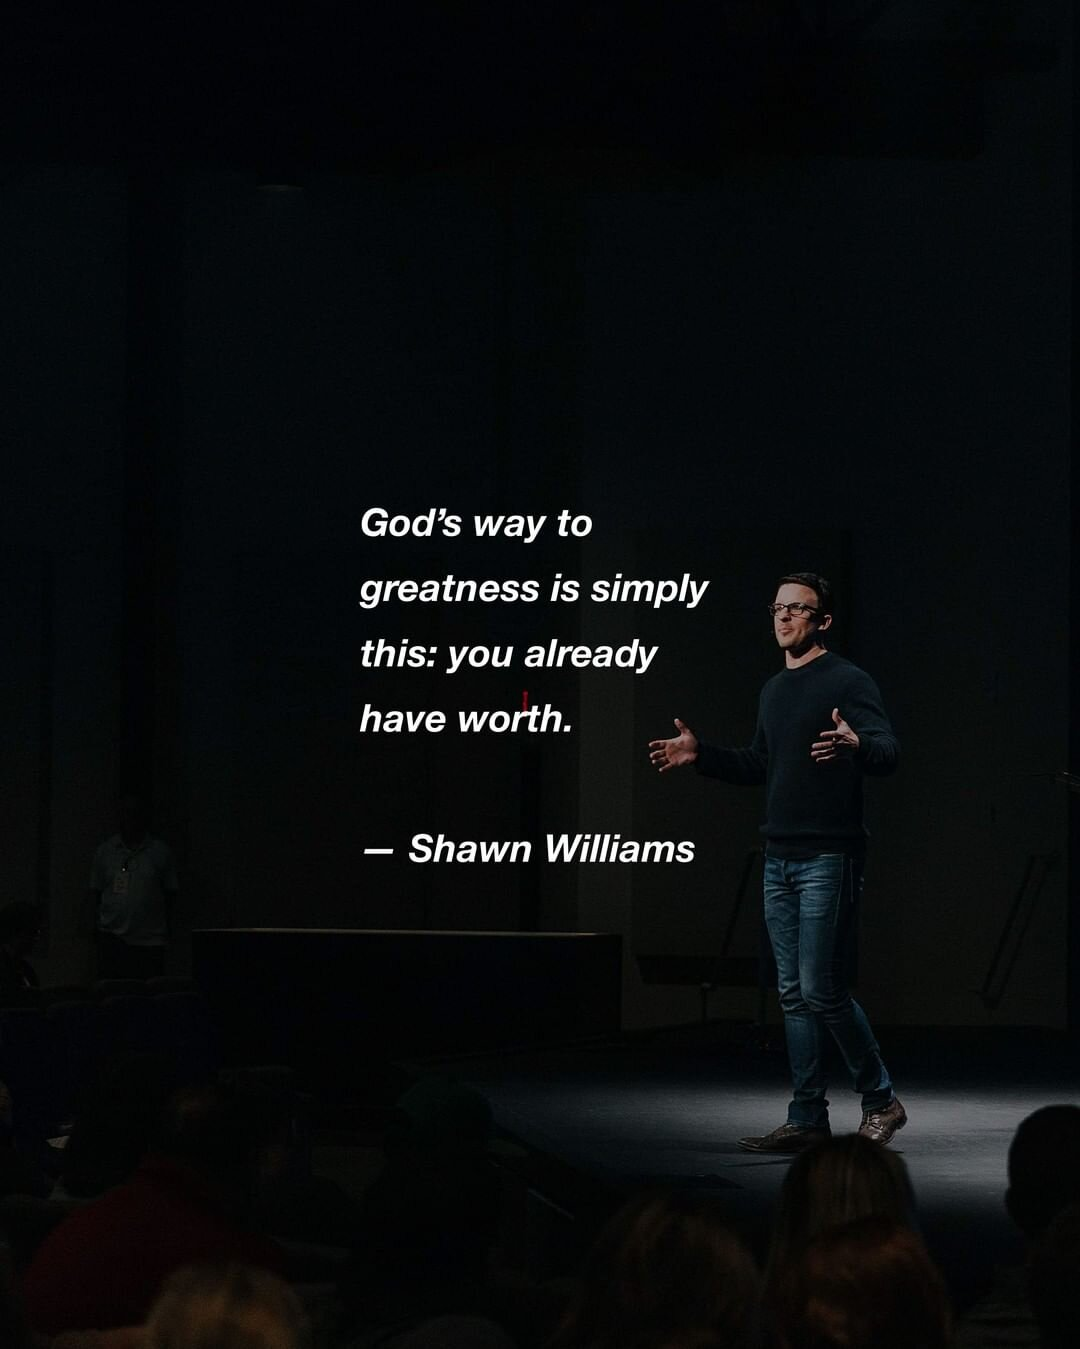 Pastor Shawn Williams at Mission Church in Bloomingdale, IL